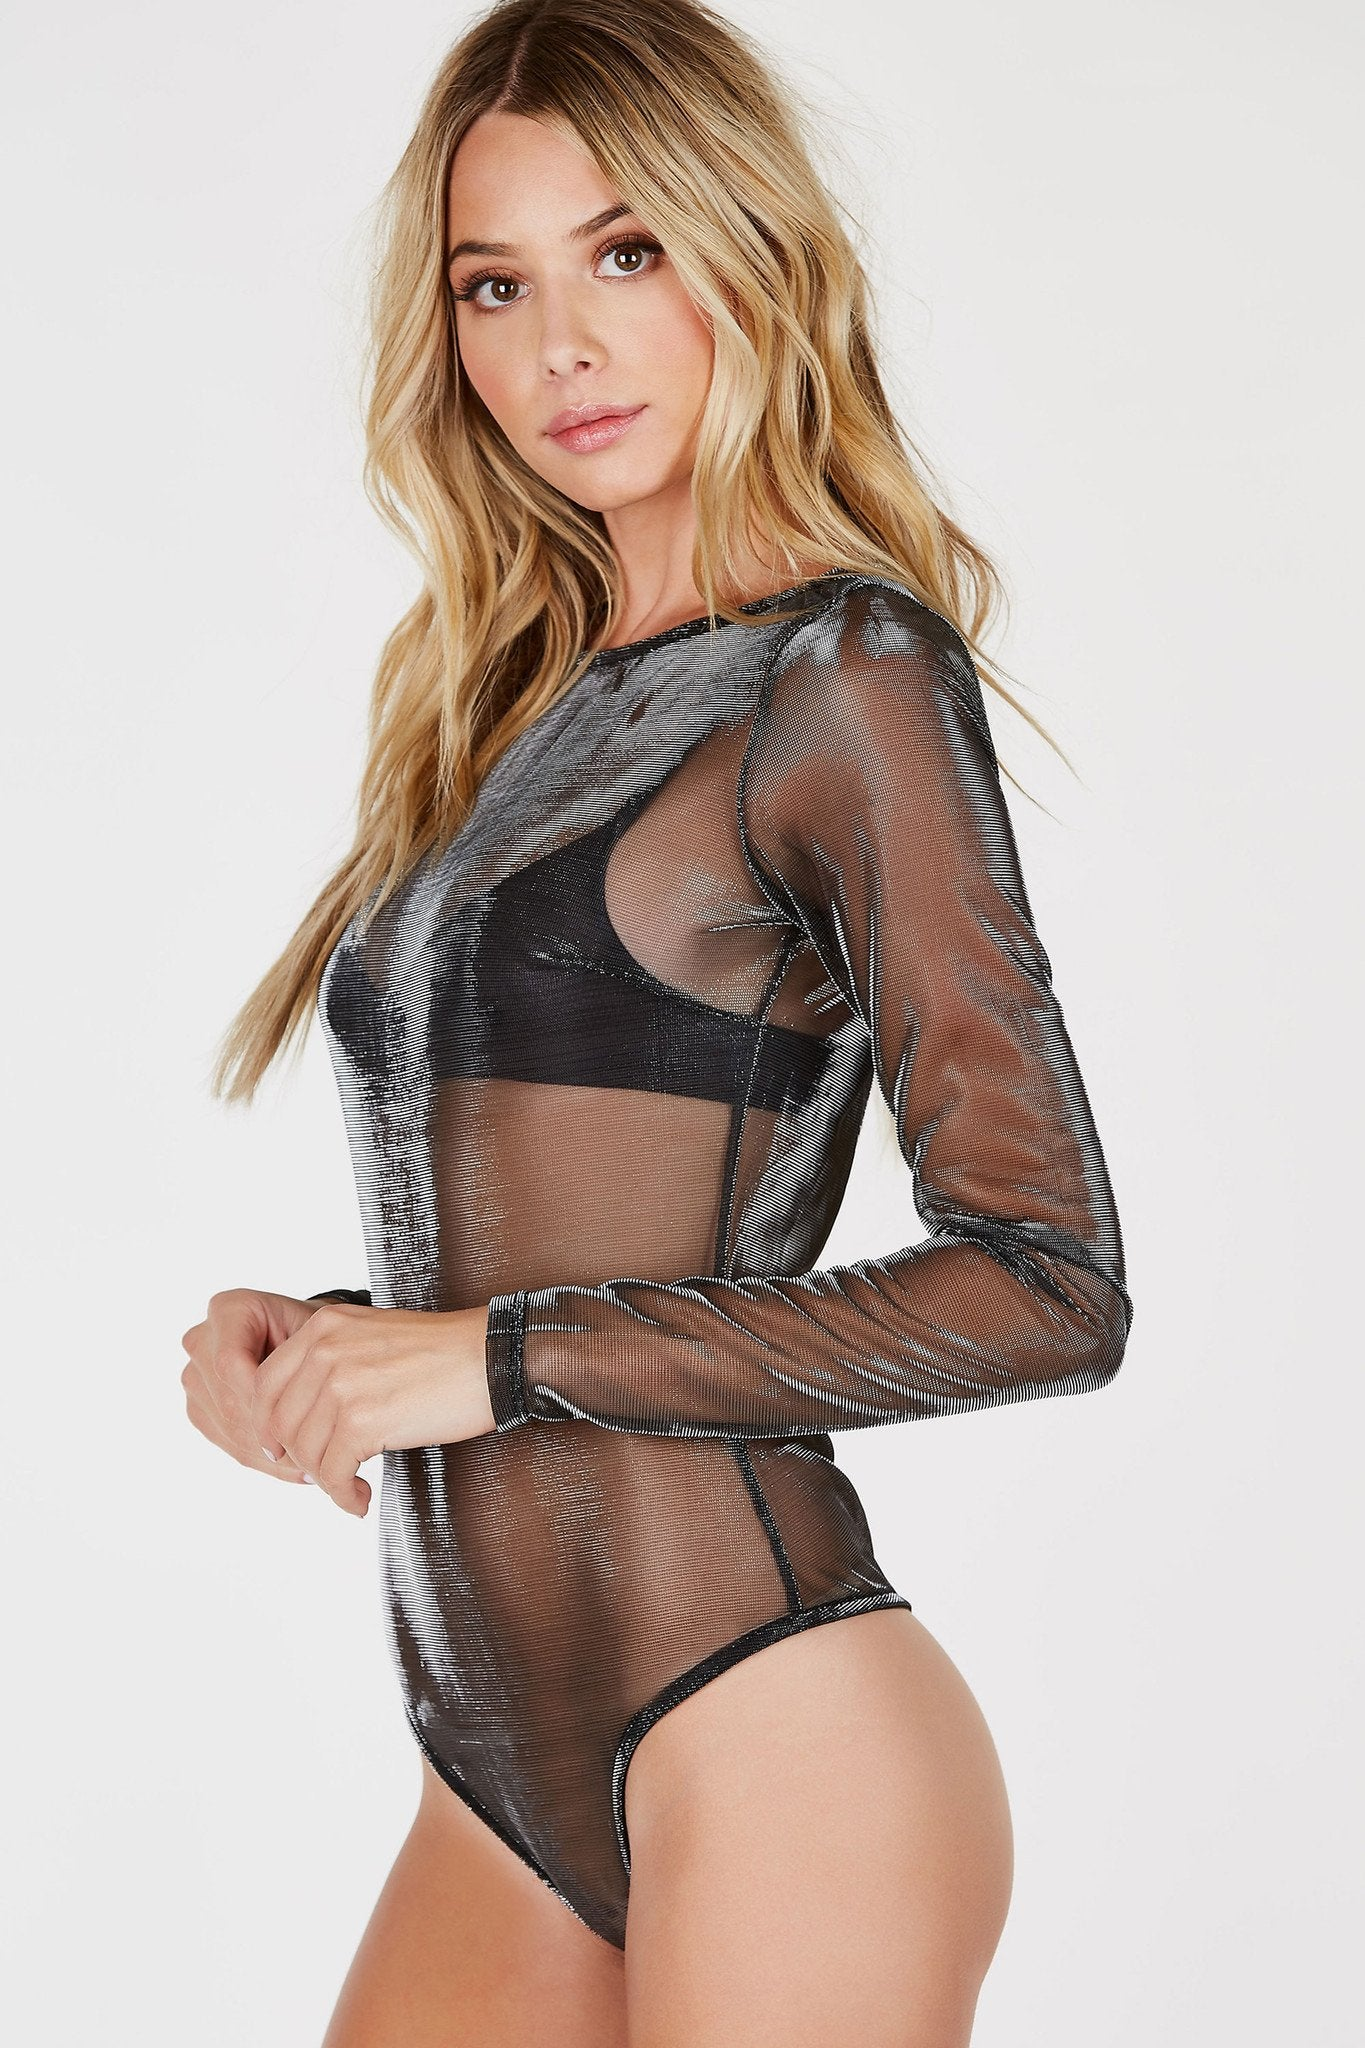 Get your groove on in this ultra chic long sleeve bodysuit! Smooth mesh material throughout with a comfortable cheeky cut with hook and eye closure. Rounded neckline with a slim fit all around. Layer a strappy bralette underneath with some faux leather pants and pumps for a sassy nighttime look!